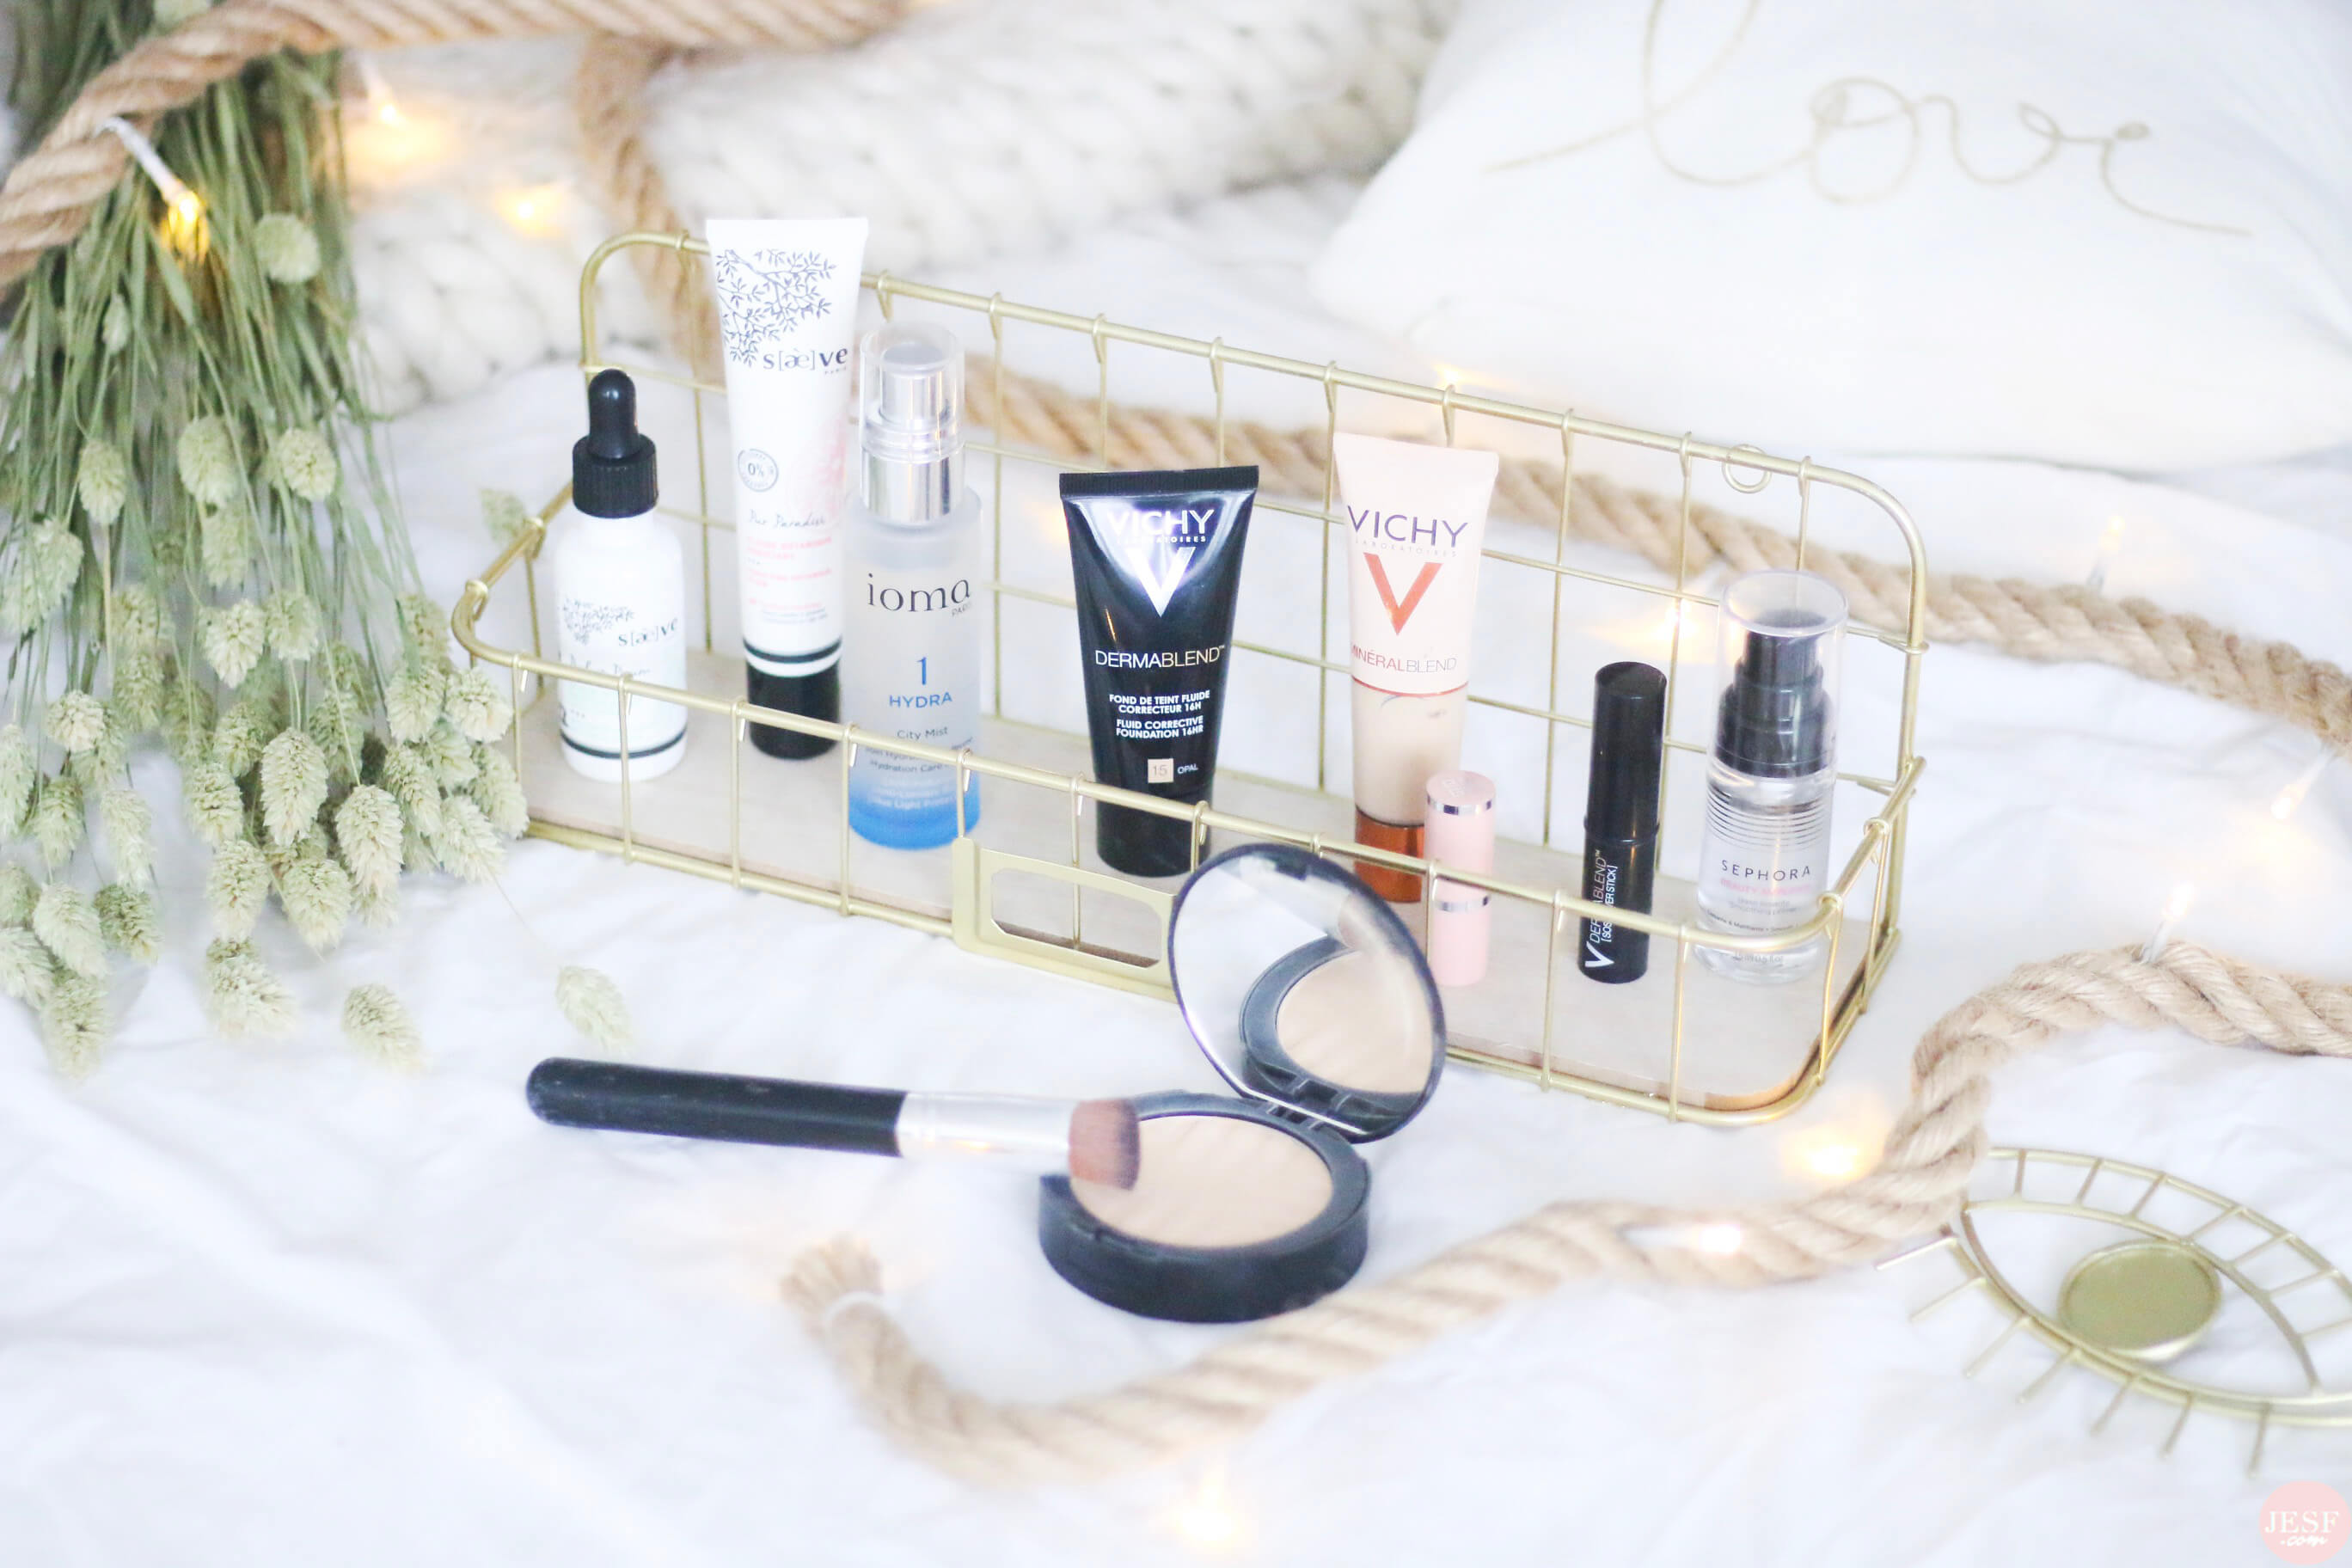 routine-teint-imperfection-visage-makeup-soin-vichy-dermablend-correcteur-saeve